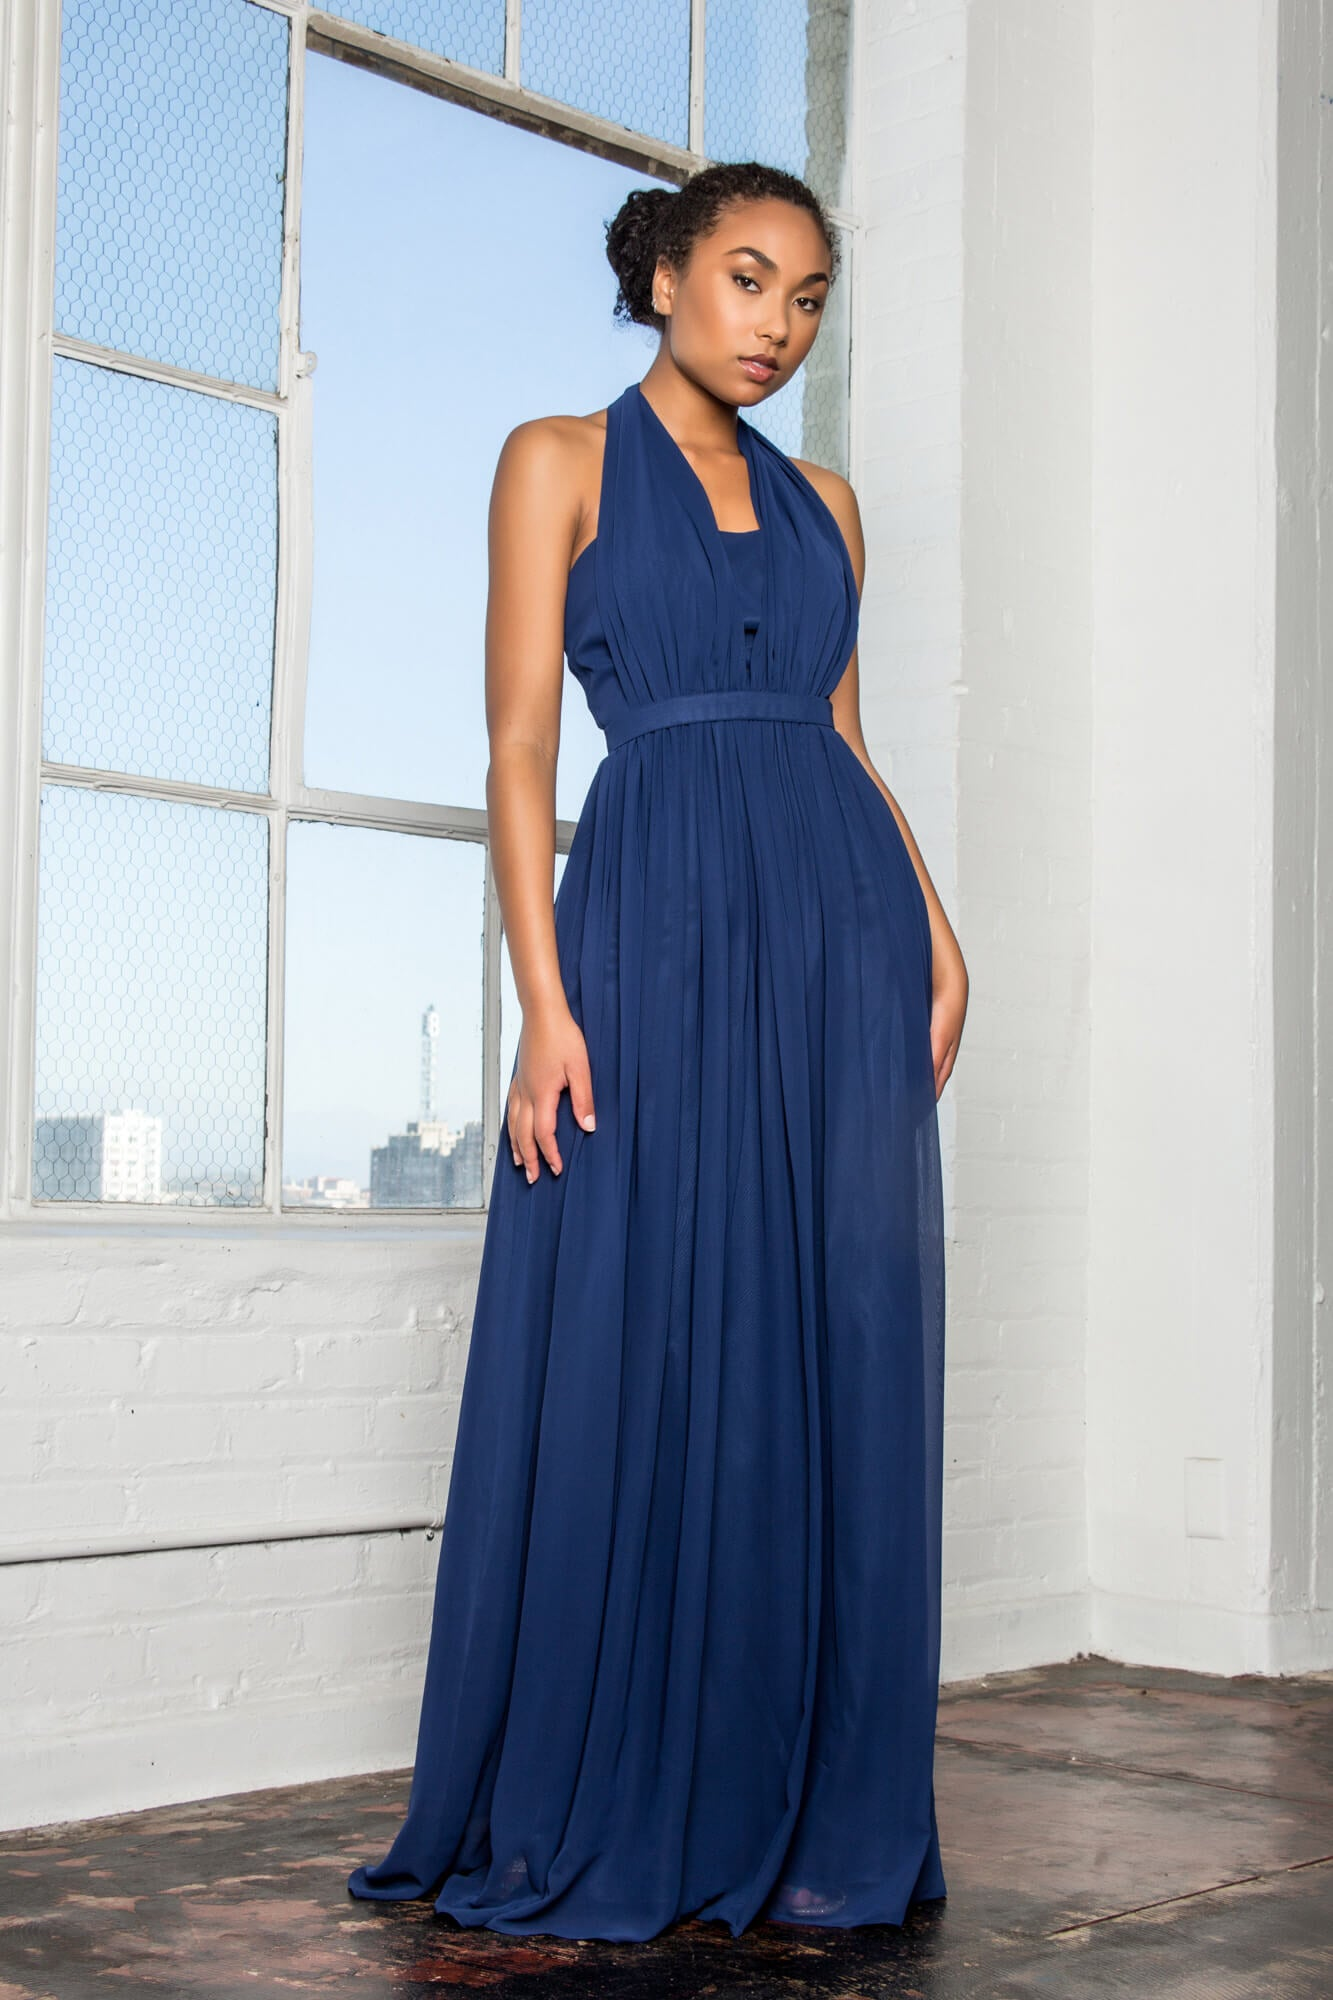 V-Neck Halter Chiffon Long Formal Dress - The Dress Outlet Elizabeth K